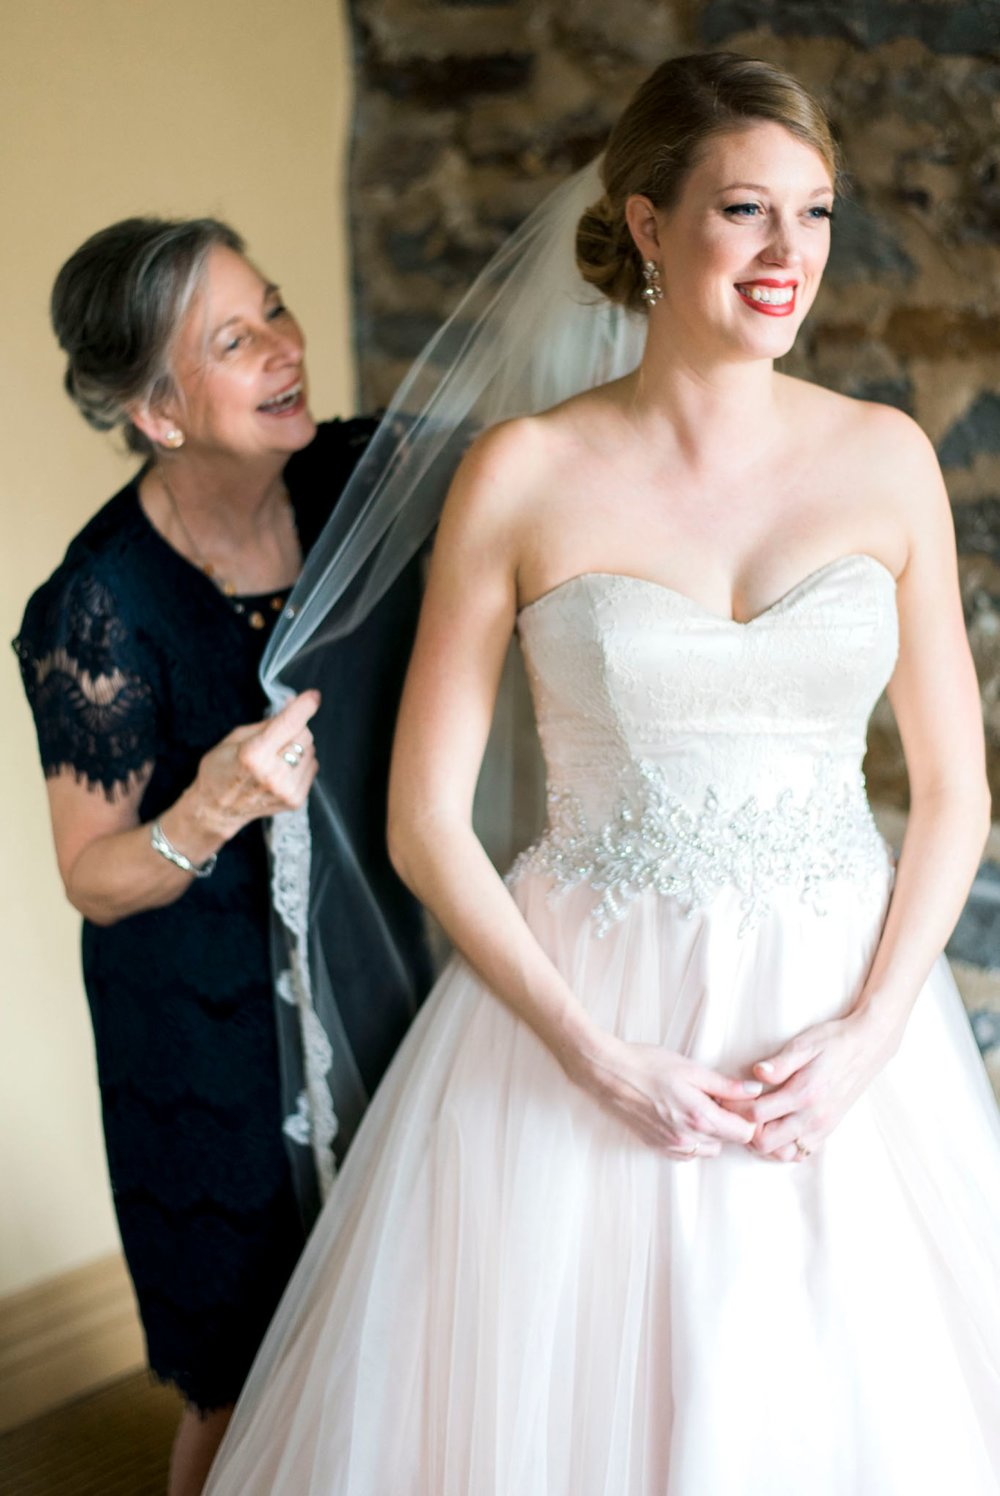 downtownlynchburg_virginiaweddingphotographer_Craddockterryhotel_churchwedding 19.jpg